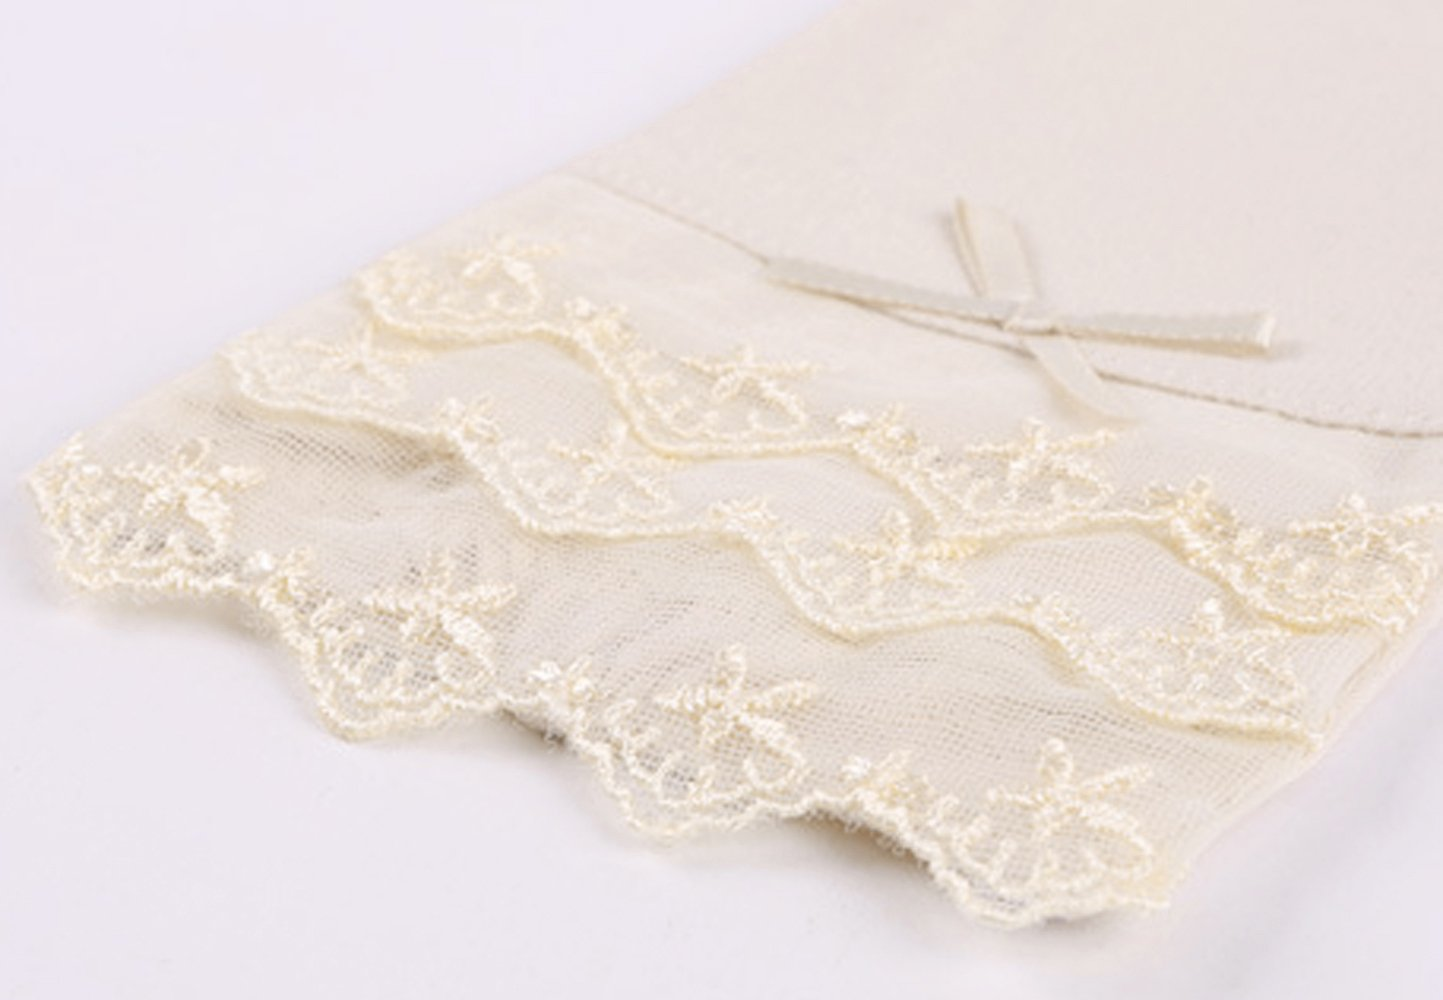 Women's Lace Bowknot Fingerless Gloves Perfect for Driving/Party/Evening with Gift Box by LAI MENG FIVE CATS (Image #6)